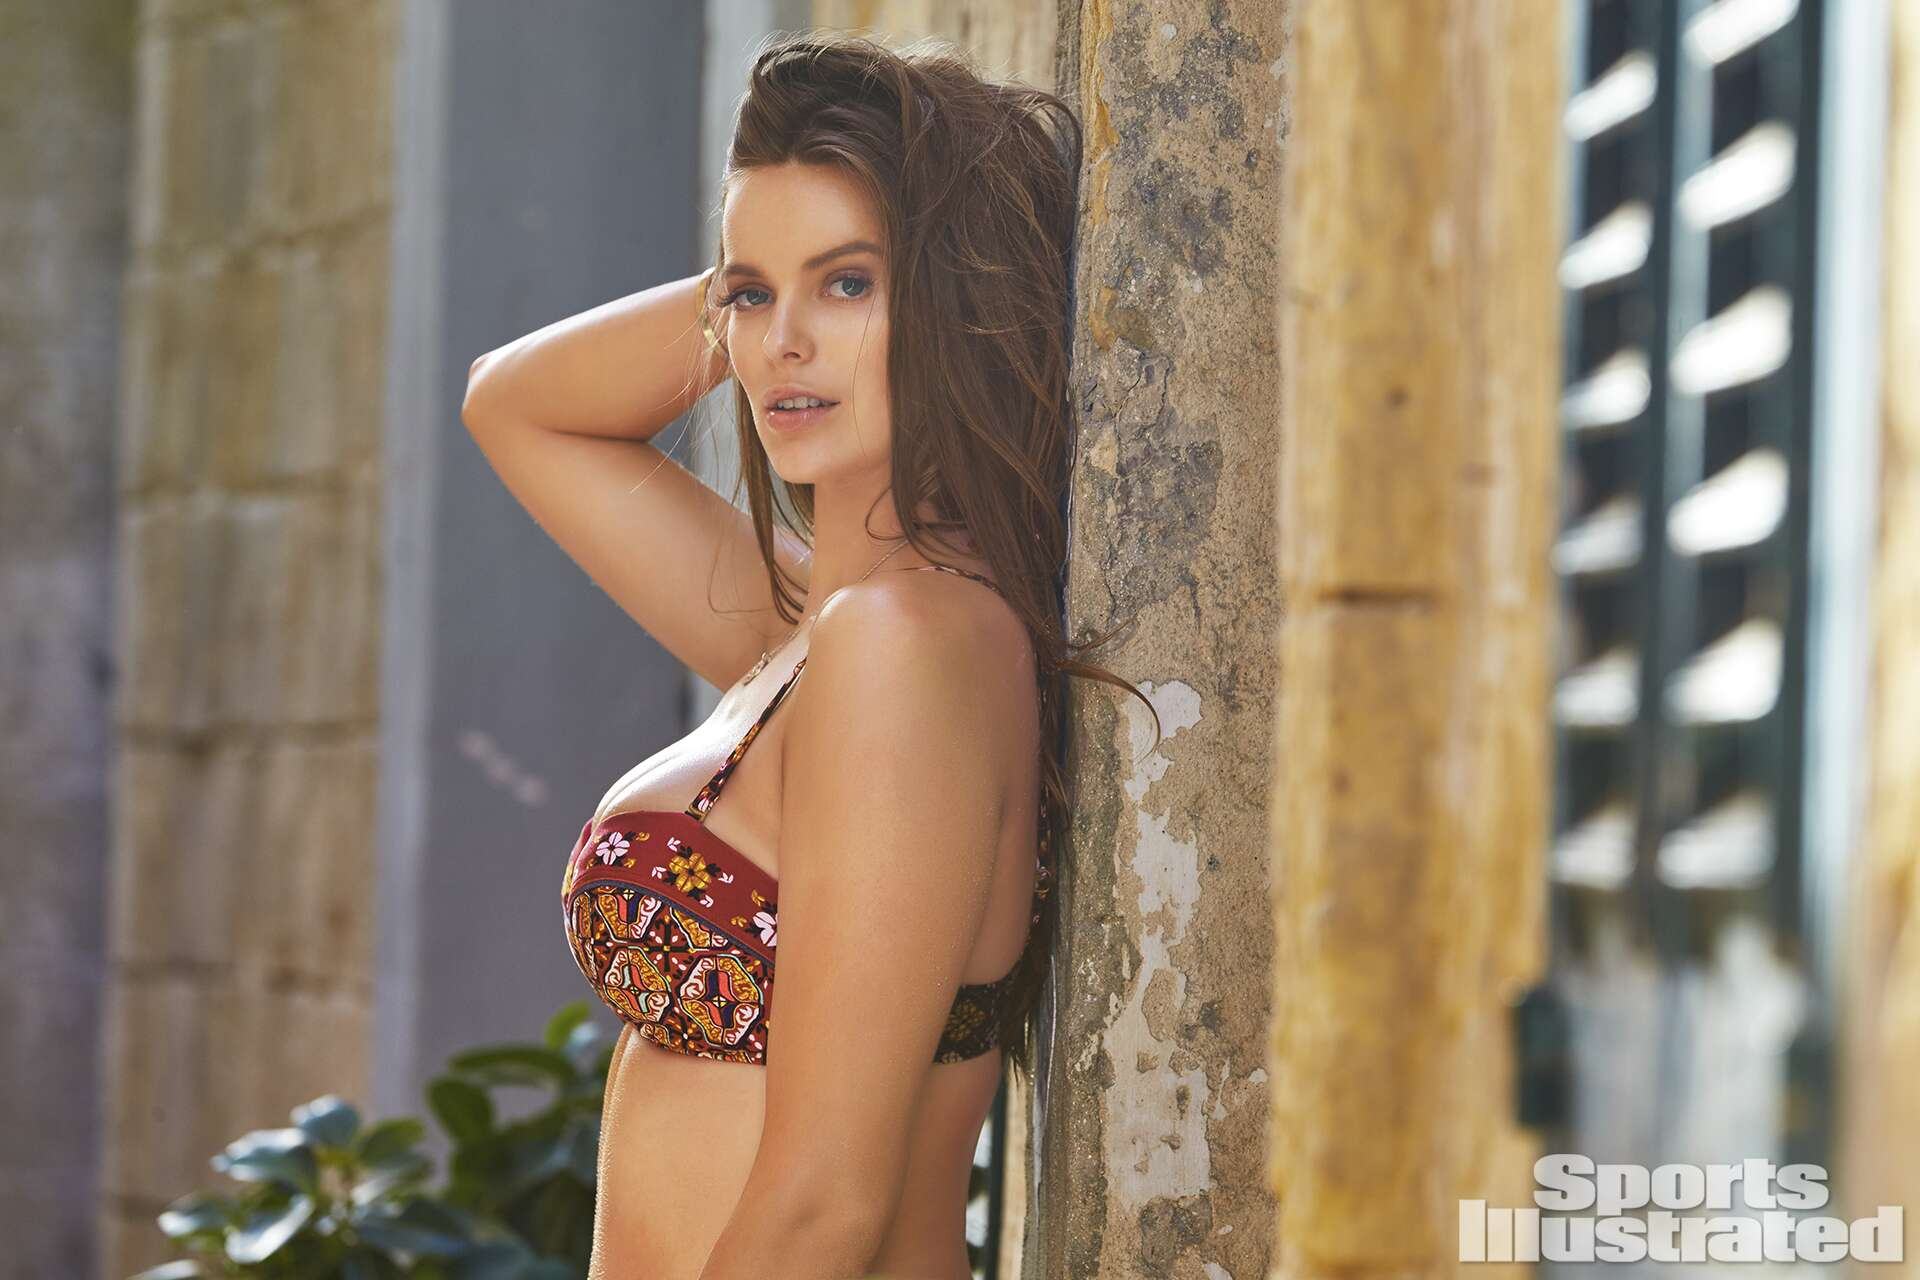 Robyn Lawley was photographed by Ben Watts in Malta. Swimsuit by Tigerlily Swimwear.